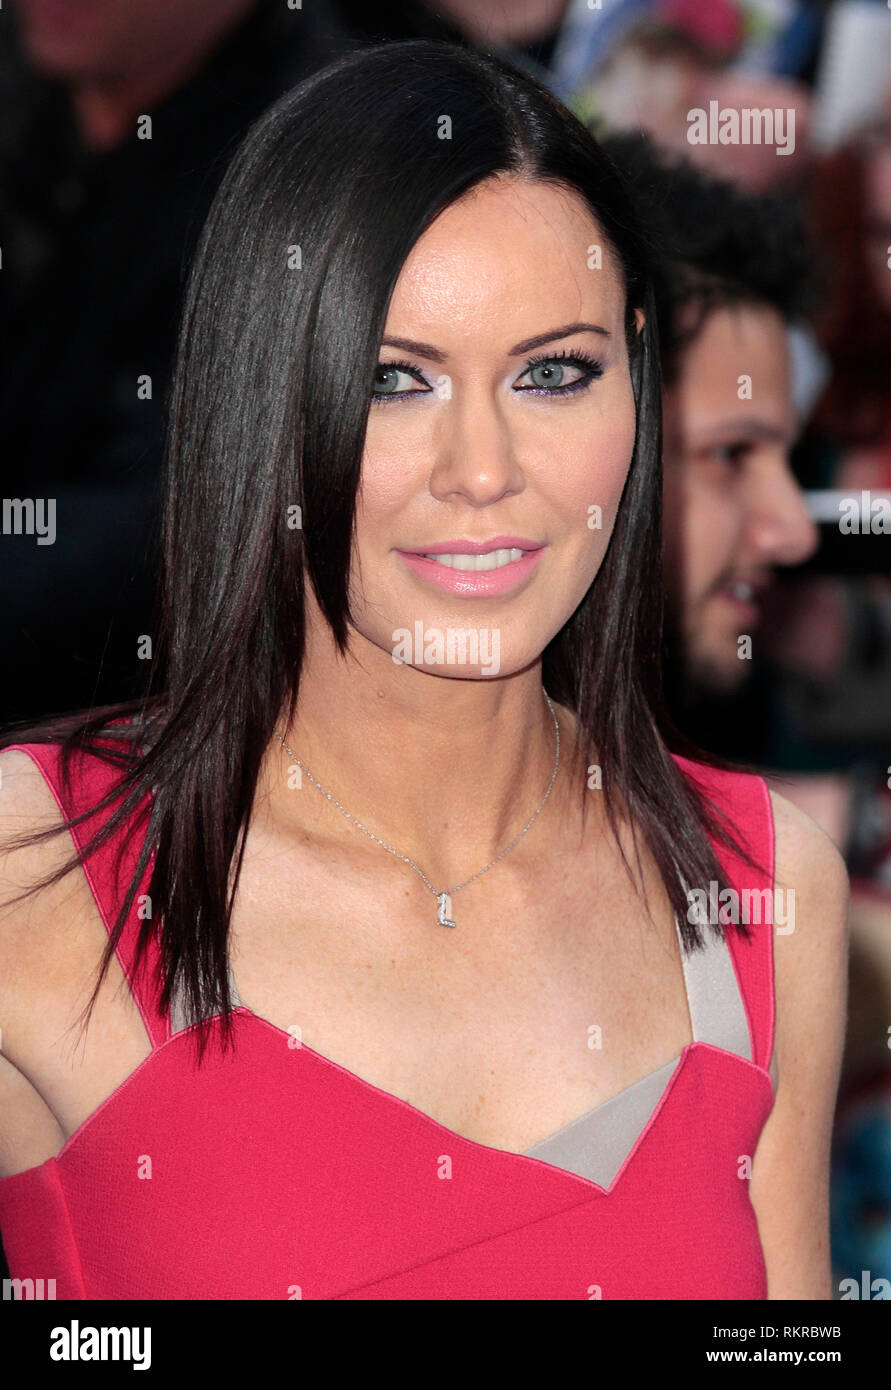 Linzi Stoppard arrives at the UK Premiere of 'X-Men: Days Of Future Past' at Odeon Leicester Square in London, England - Stock Image